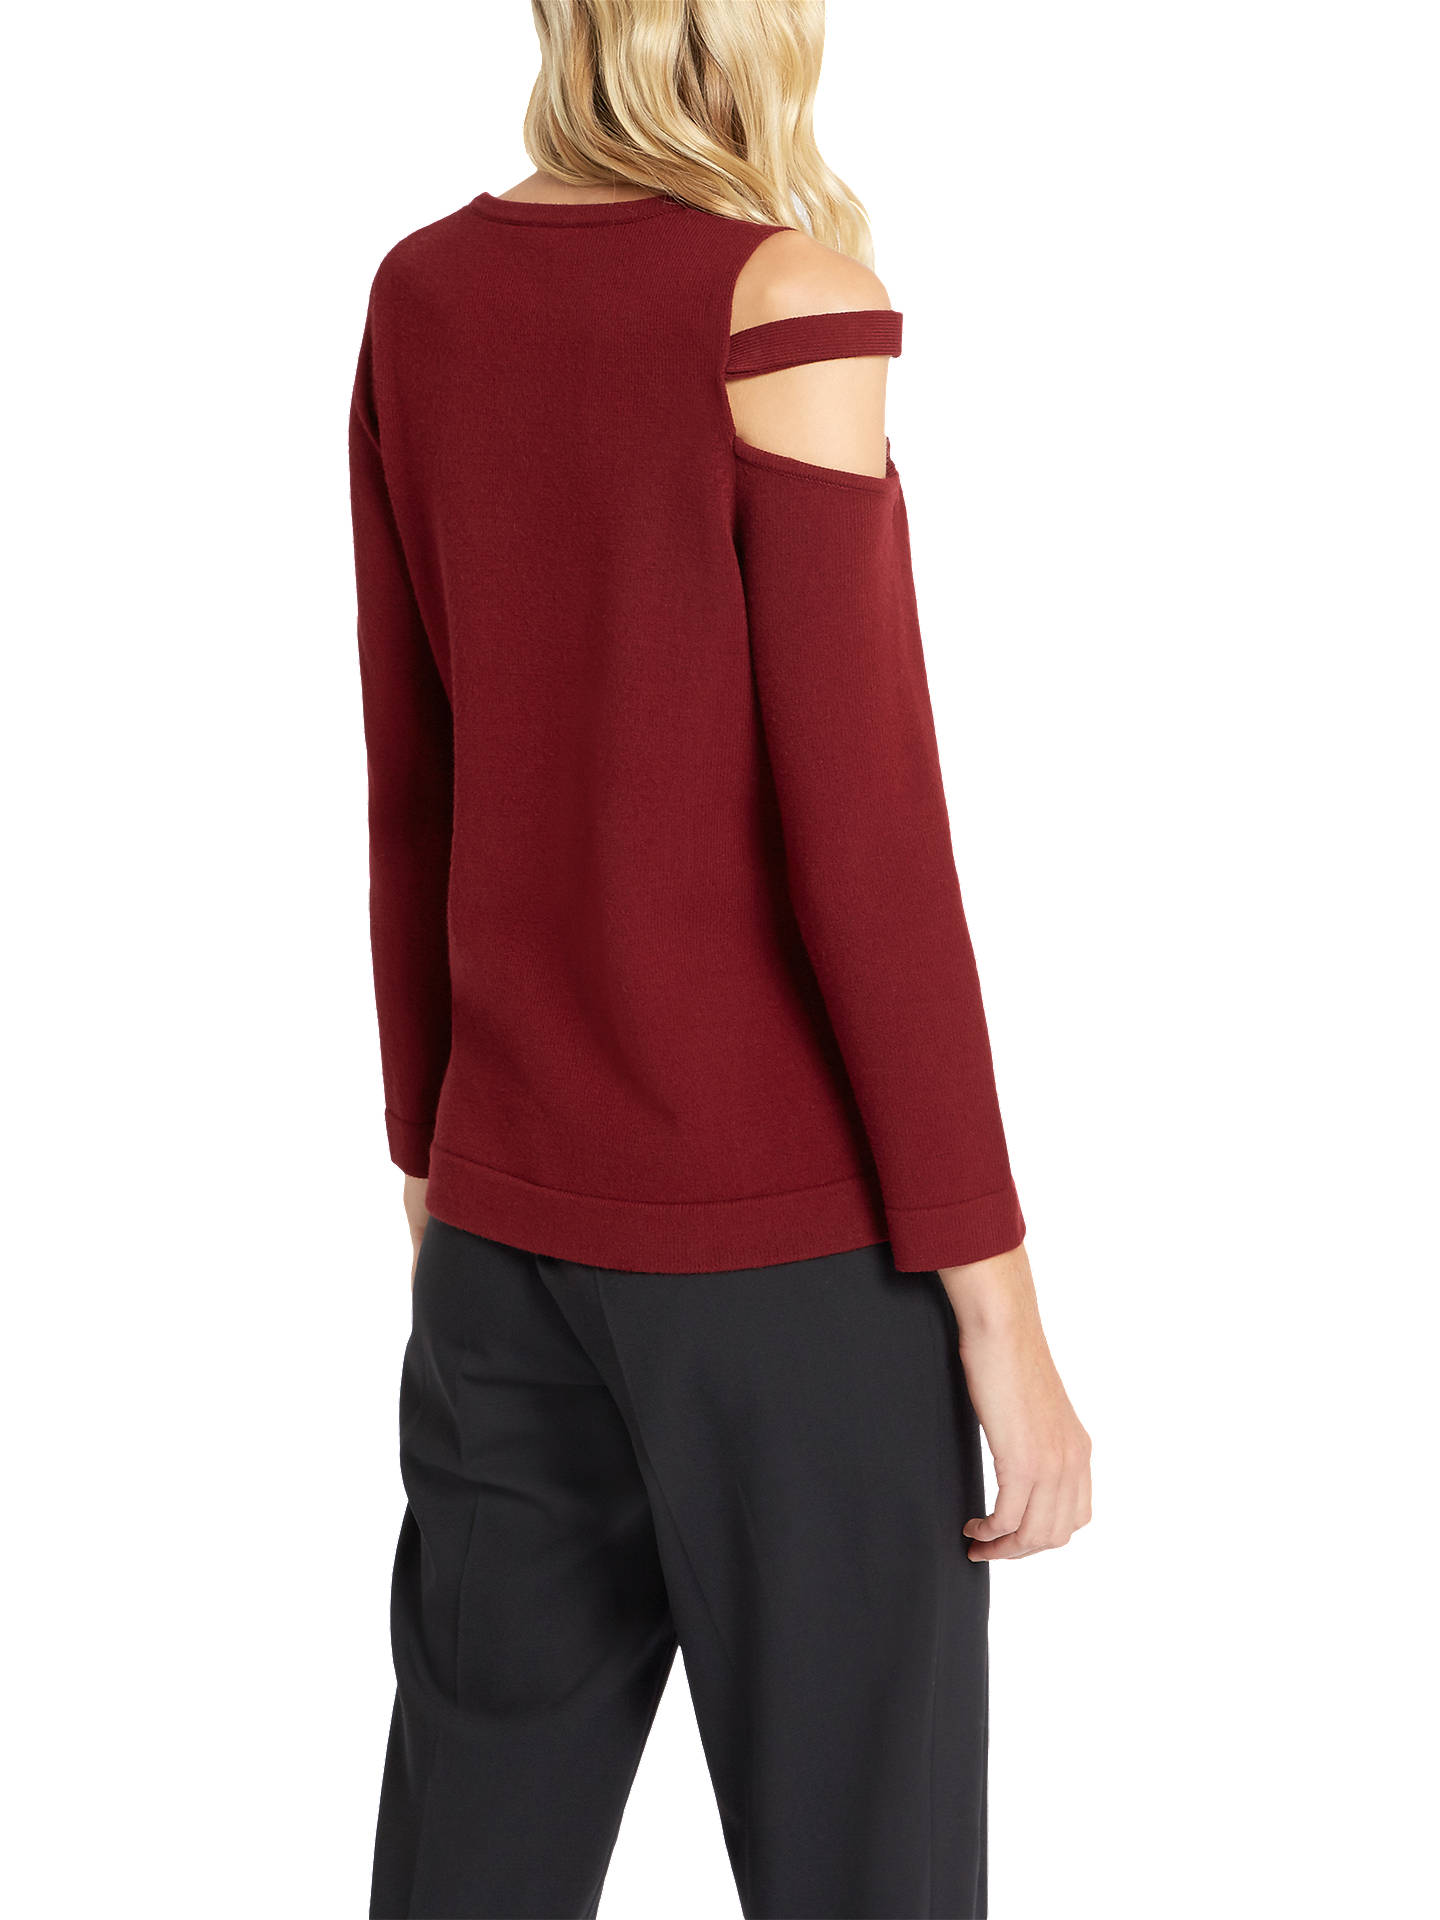 BuyJaeger Cut Out Detail Jumper, Burgundy, XS Online at johnlewis.com